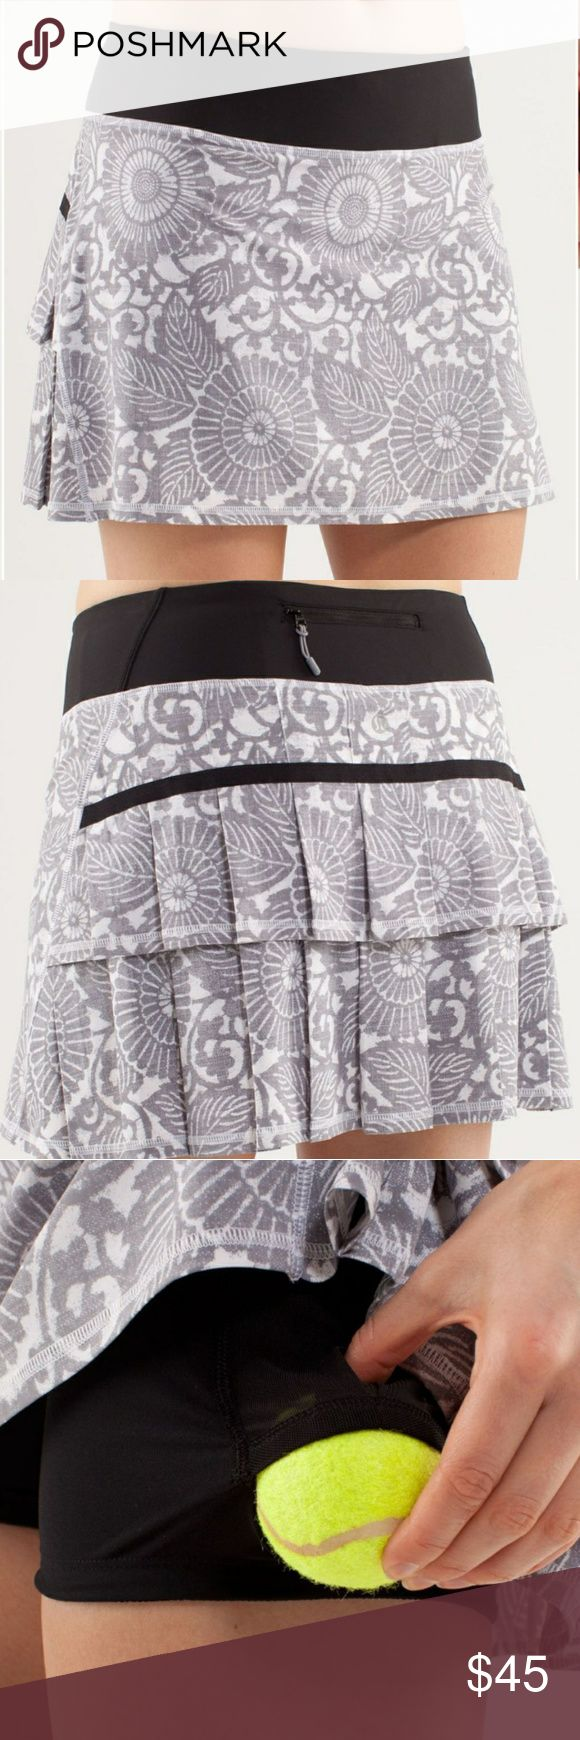 """Lululemon Pace Setter Ruffle Skirt Excellent condition! Sold out online! Rare pattern. Beachy floral white fossil. 15.5""""waist x 15""""L. lululemon athletica Shorts Skorts"""